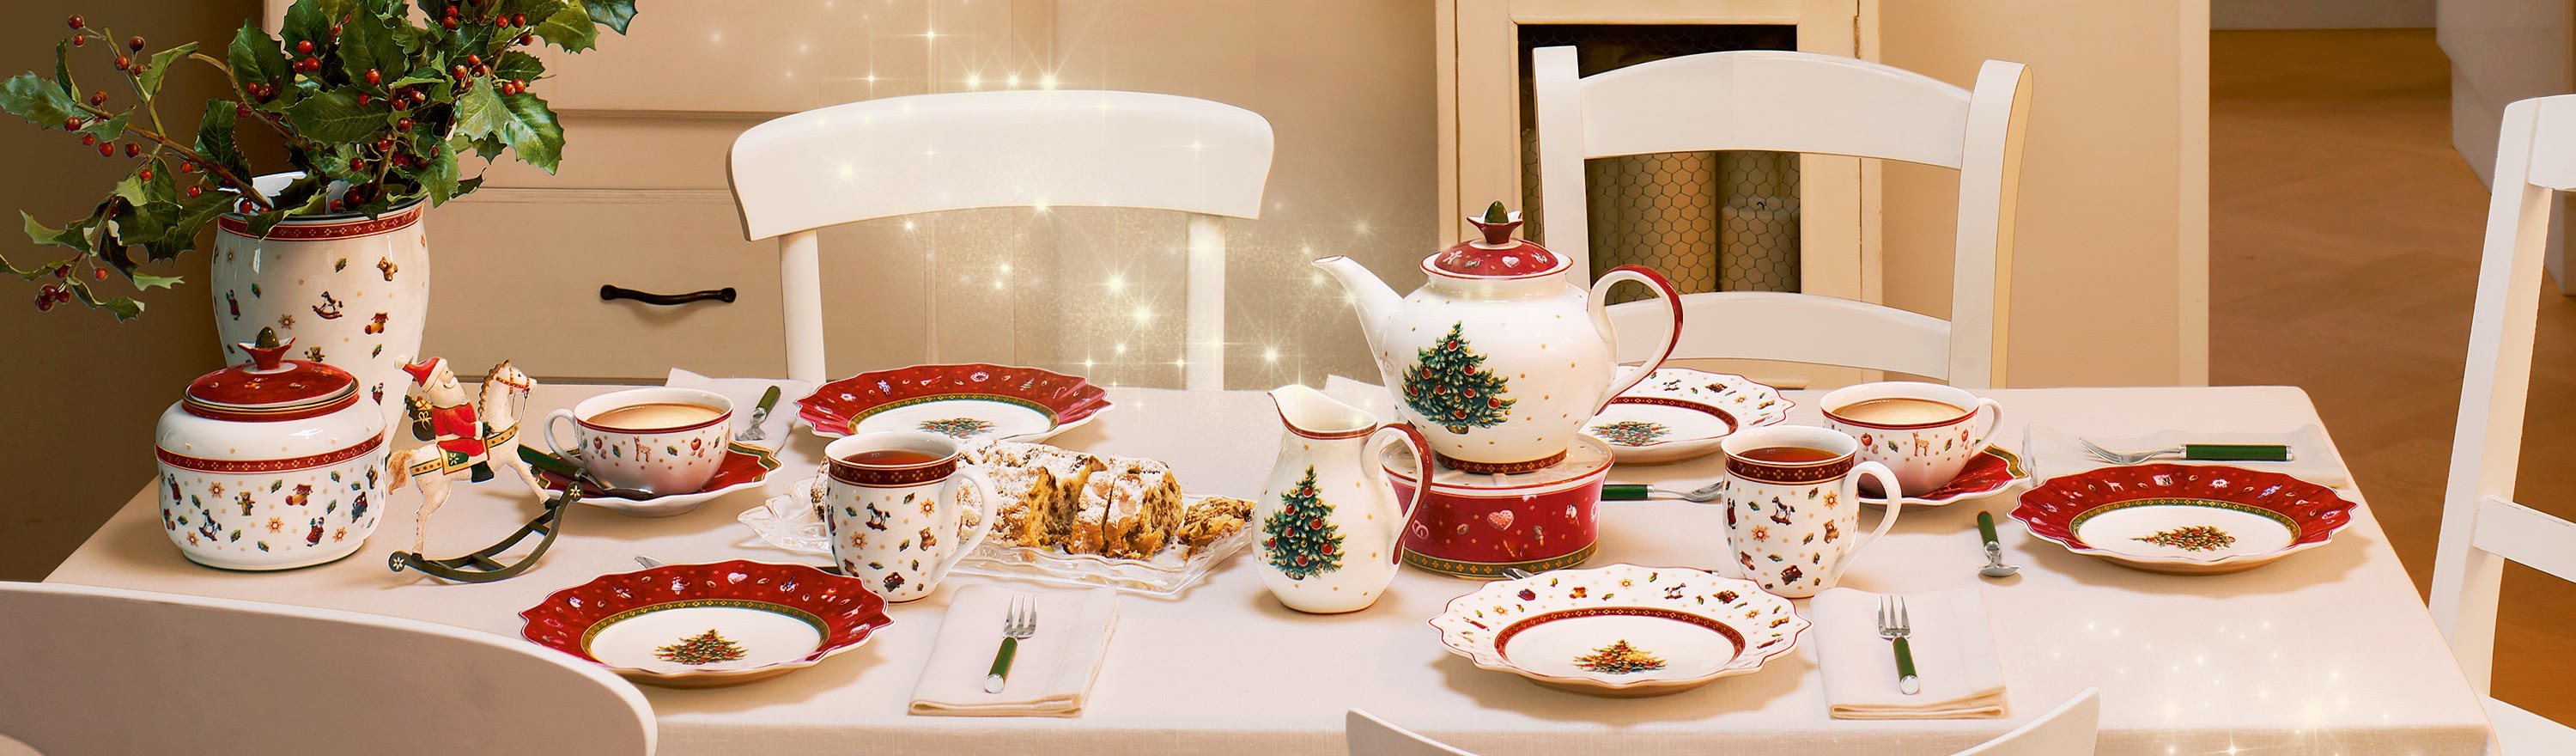 Captivating Christmas Dinnerware For Christmas Decorating Ideas With Christmas Dinnerware Sets Clearance & Kitchen u0026 Dining Sets: Captivating Christmas Dinnerware For ...